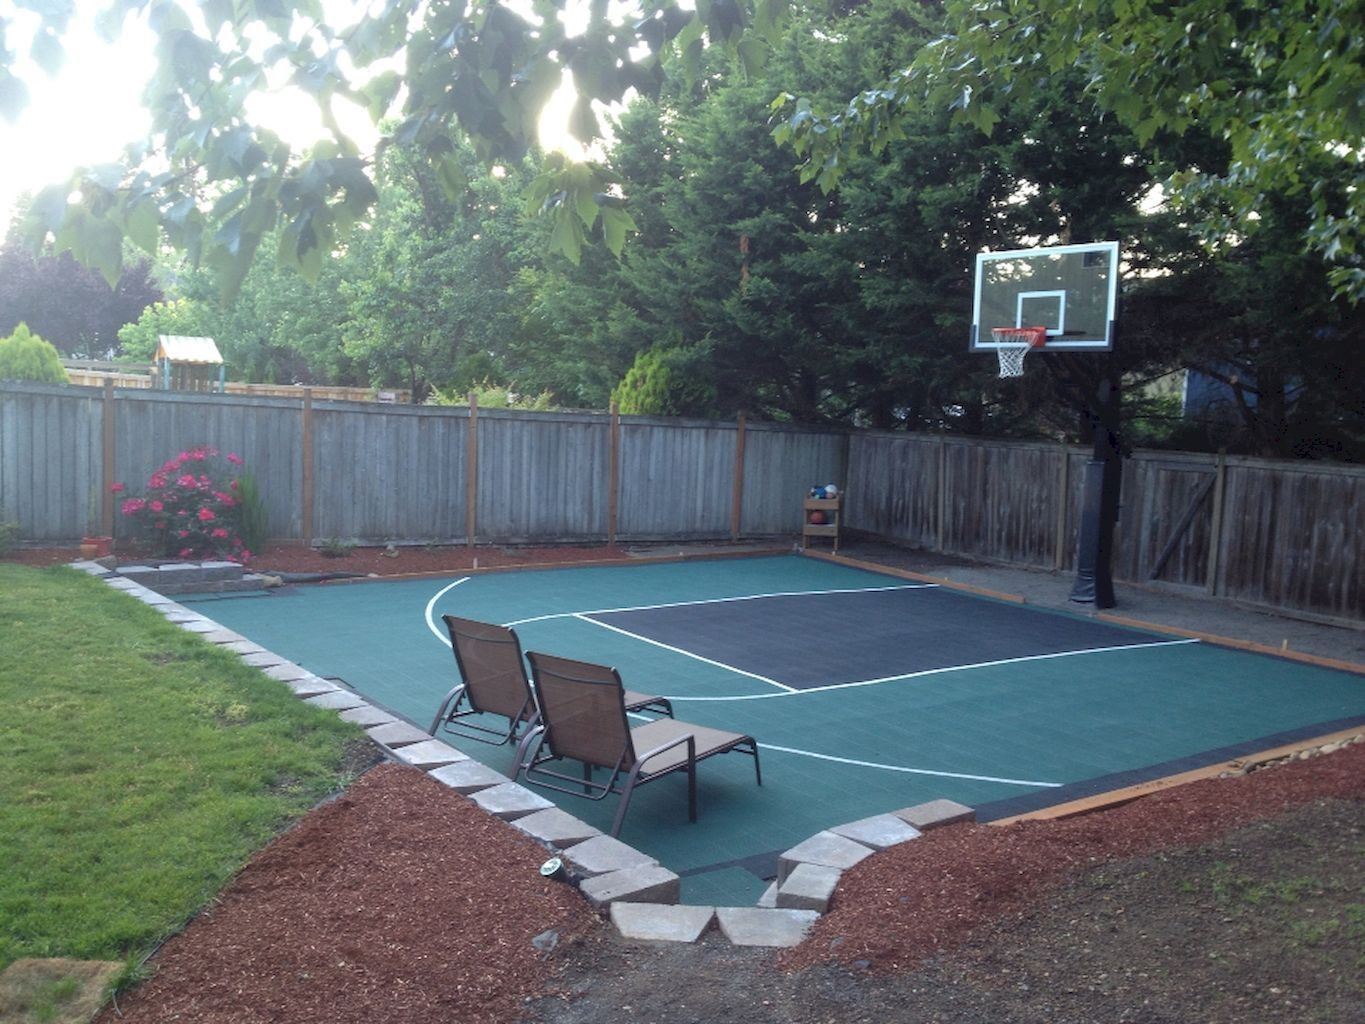 22 Genius Concepts Of How To Makeover Backyard Sport Court Ideas In 2020 Basketball Court Backyard Backyard Court Dream Backyard